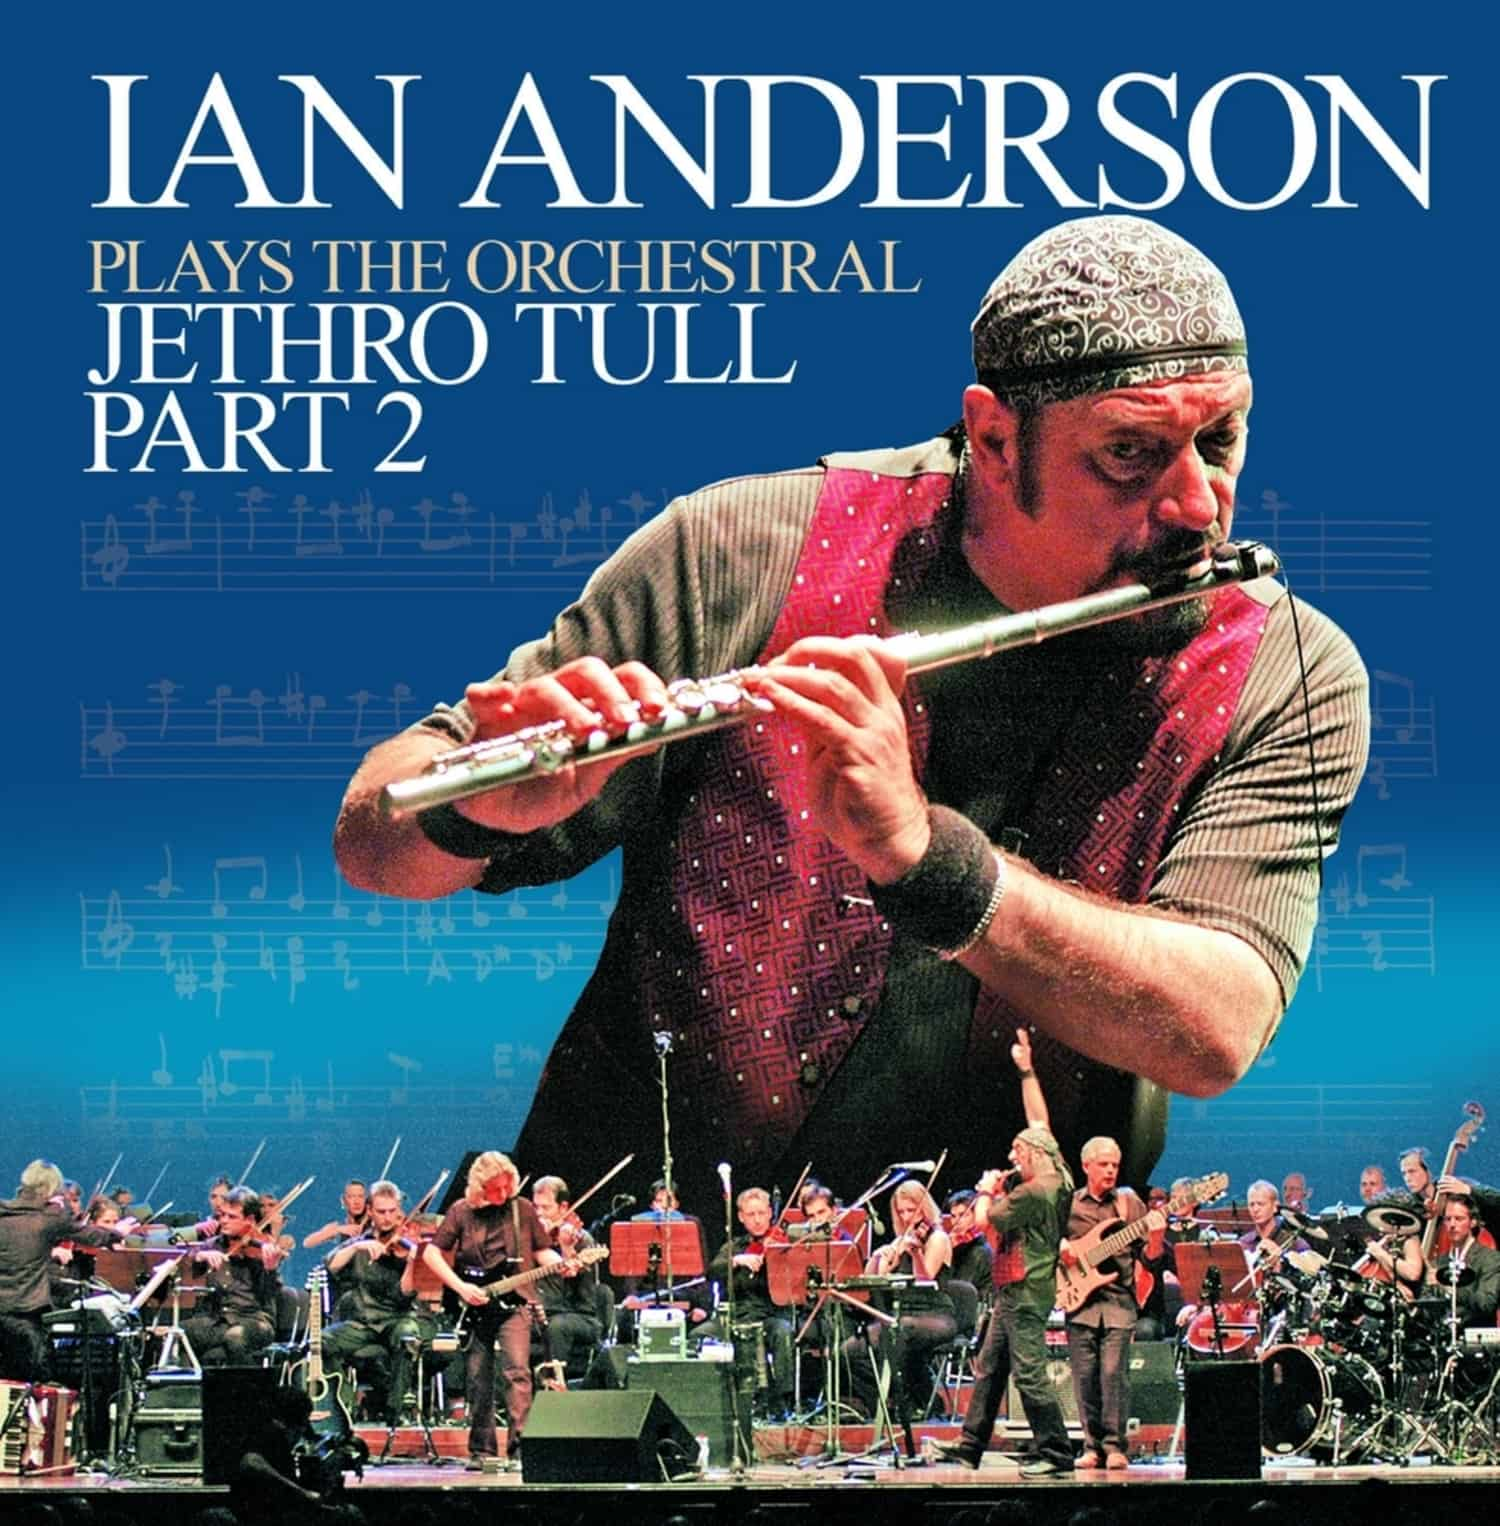 Ian Anderson - IAN ANDERSON PLAYS THE ORCHESTRAL JETHRO TULL PT.2